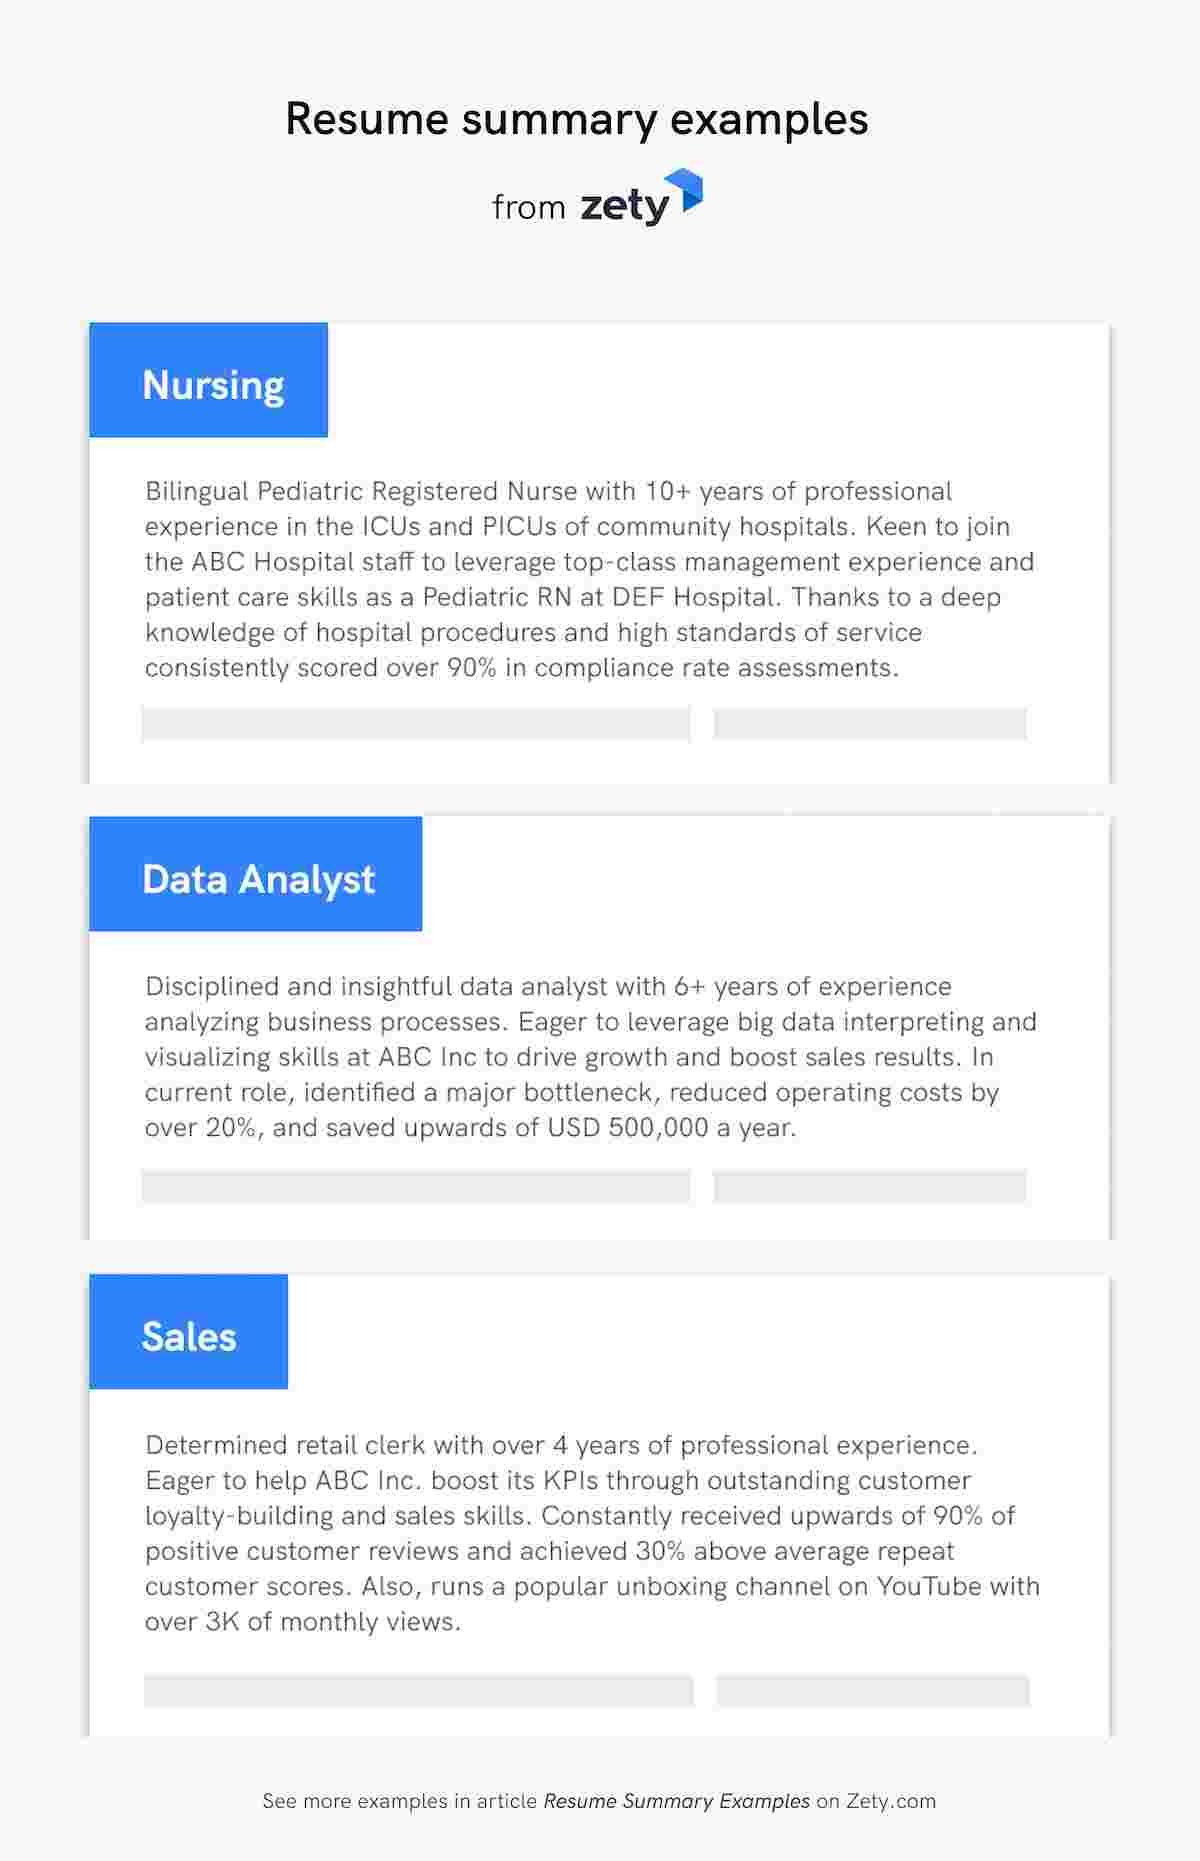 Resume Summary Samples for It Professionals Professional Resume Summary Examples (25lancarrezekiq Statements)